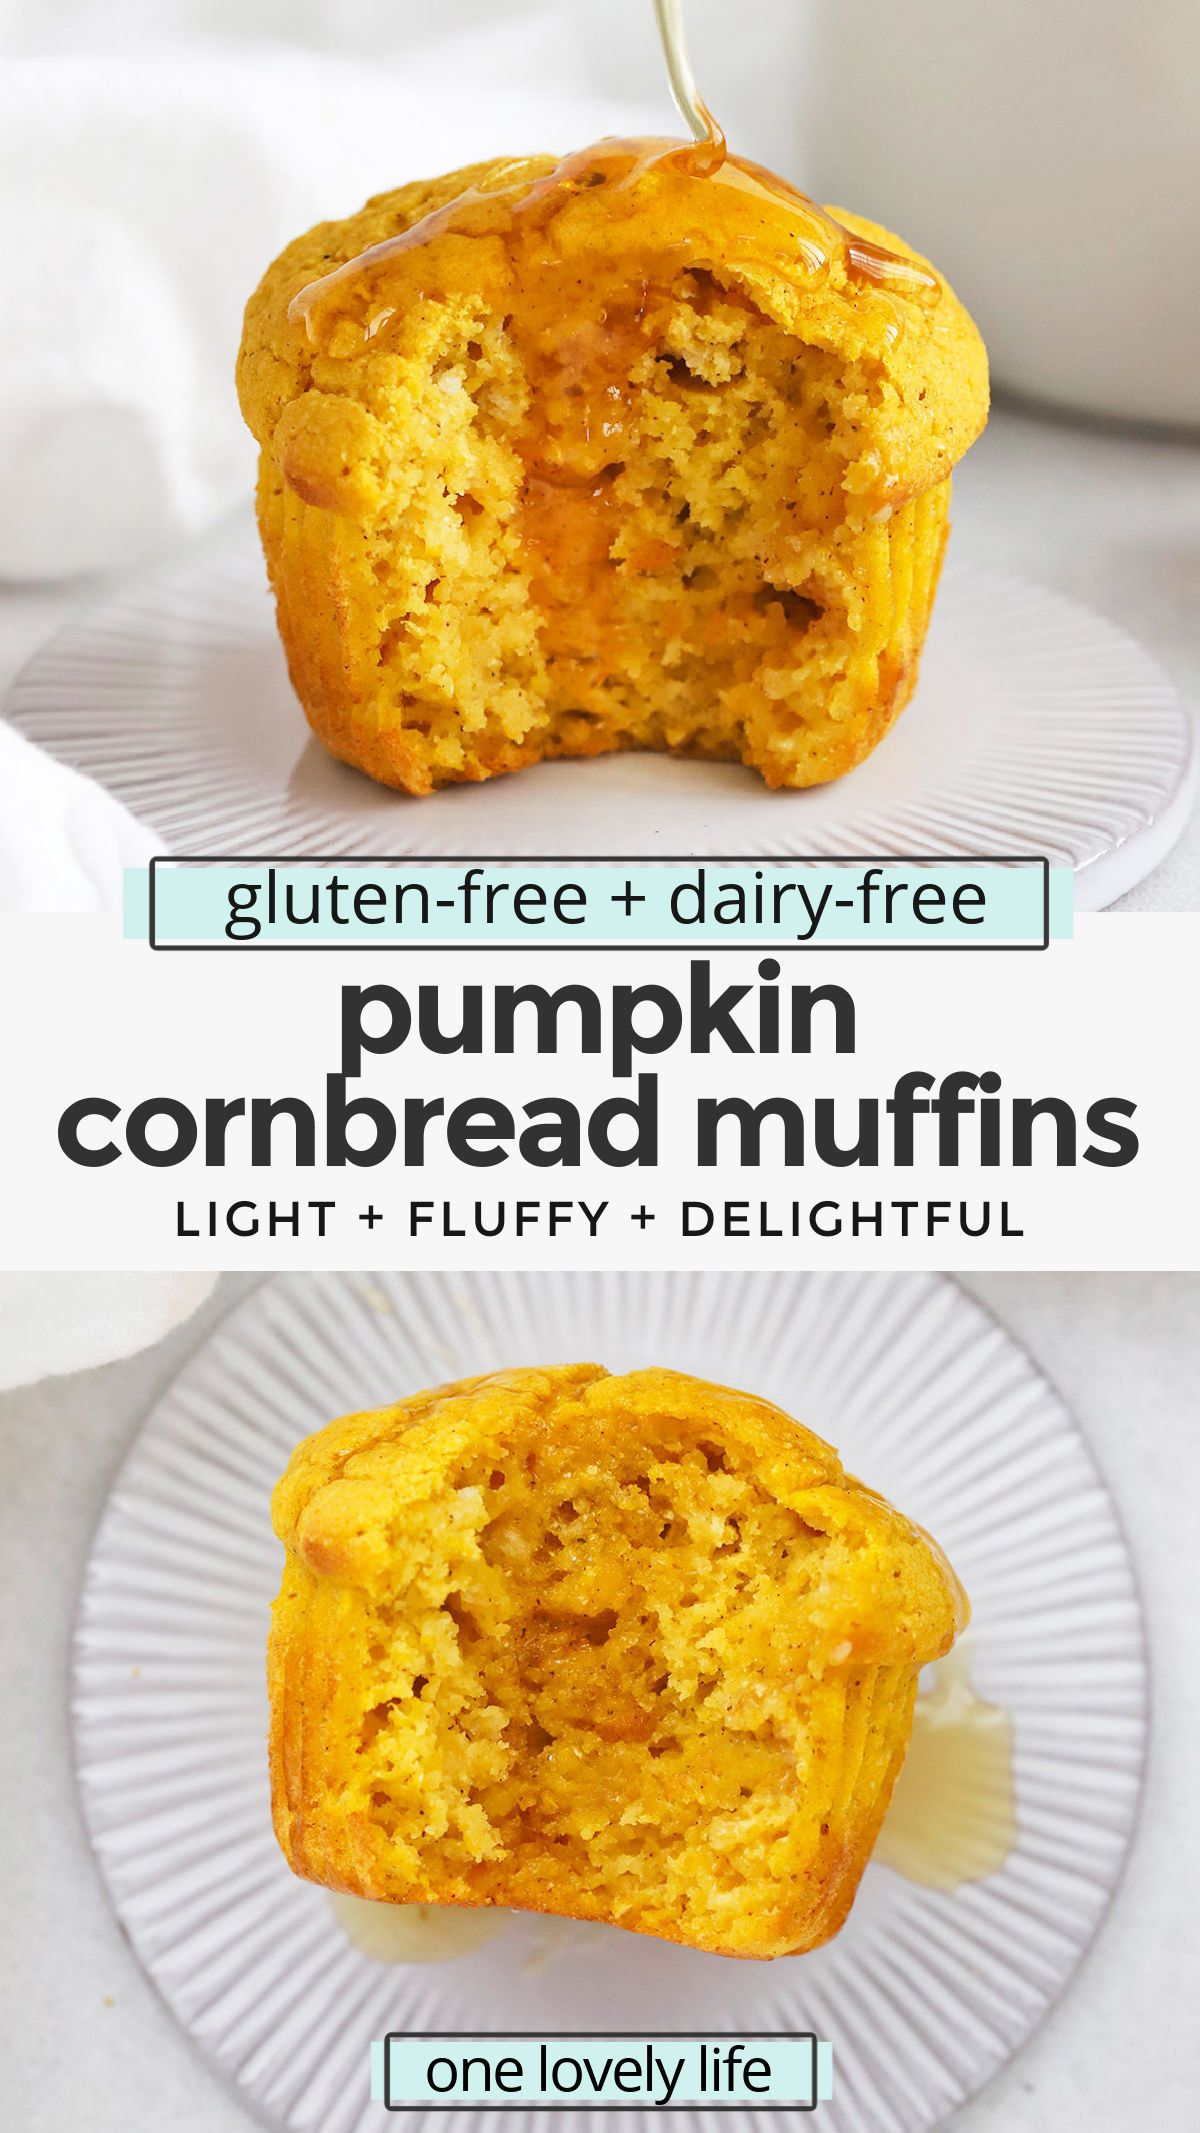 Gluten-Free Pumpkin Cornbread Muffins - These light, fluffy pumpkin cornbread muffins are an all-time favorite. The perfect cozy accompaniment to chilis, soups, salads, and more! (Gluten & Dairy Free) // cornbread muffins // gluten free cornbread muffins // pumpkin cornbread recipe // #glutenfree #dairyfree #cornbread #cornbreadmuffins #pumpkin #pumpkinmuffins